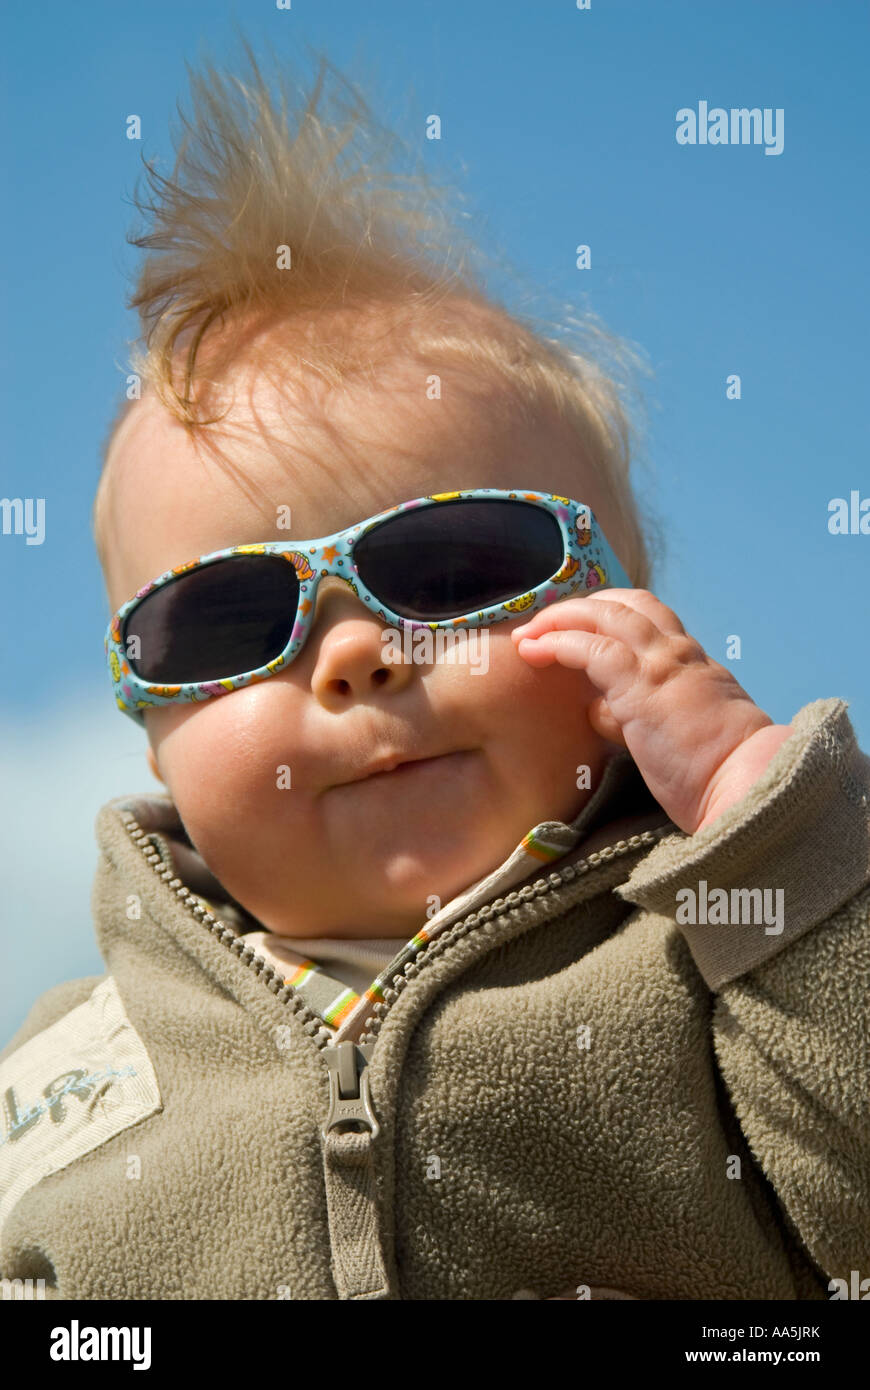 humorous vertical close up of a 6 month old baby boy posing for